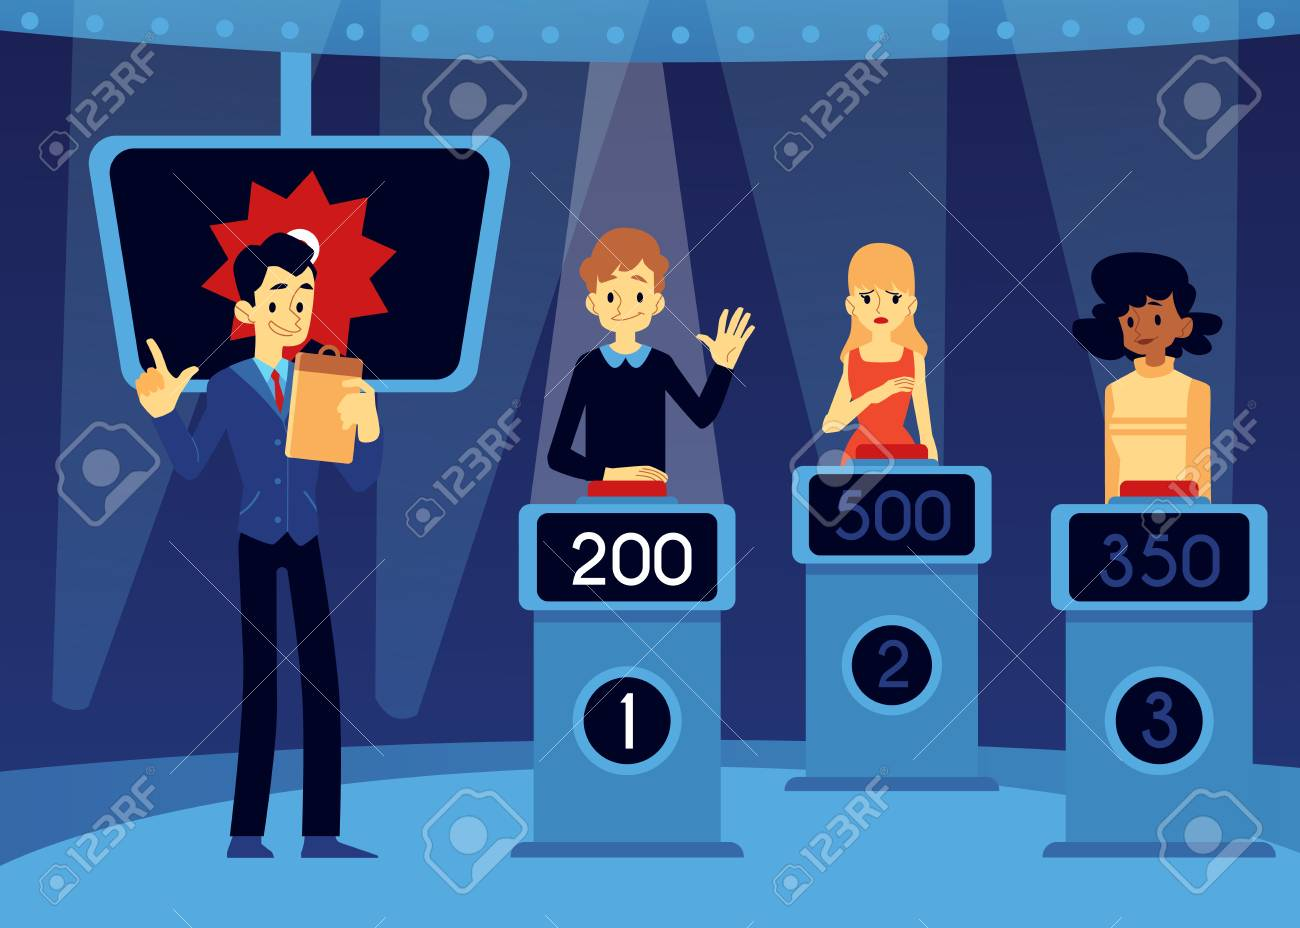 Vector erudite TV quiz show concept with show host, emcee near man, women taking part in game standing at podium with points at screen raising hand up , pushing red button in order to answer. - 122414897